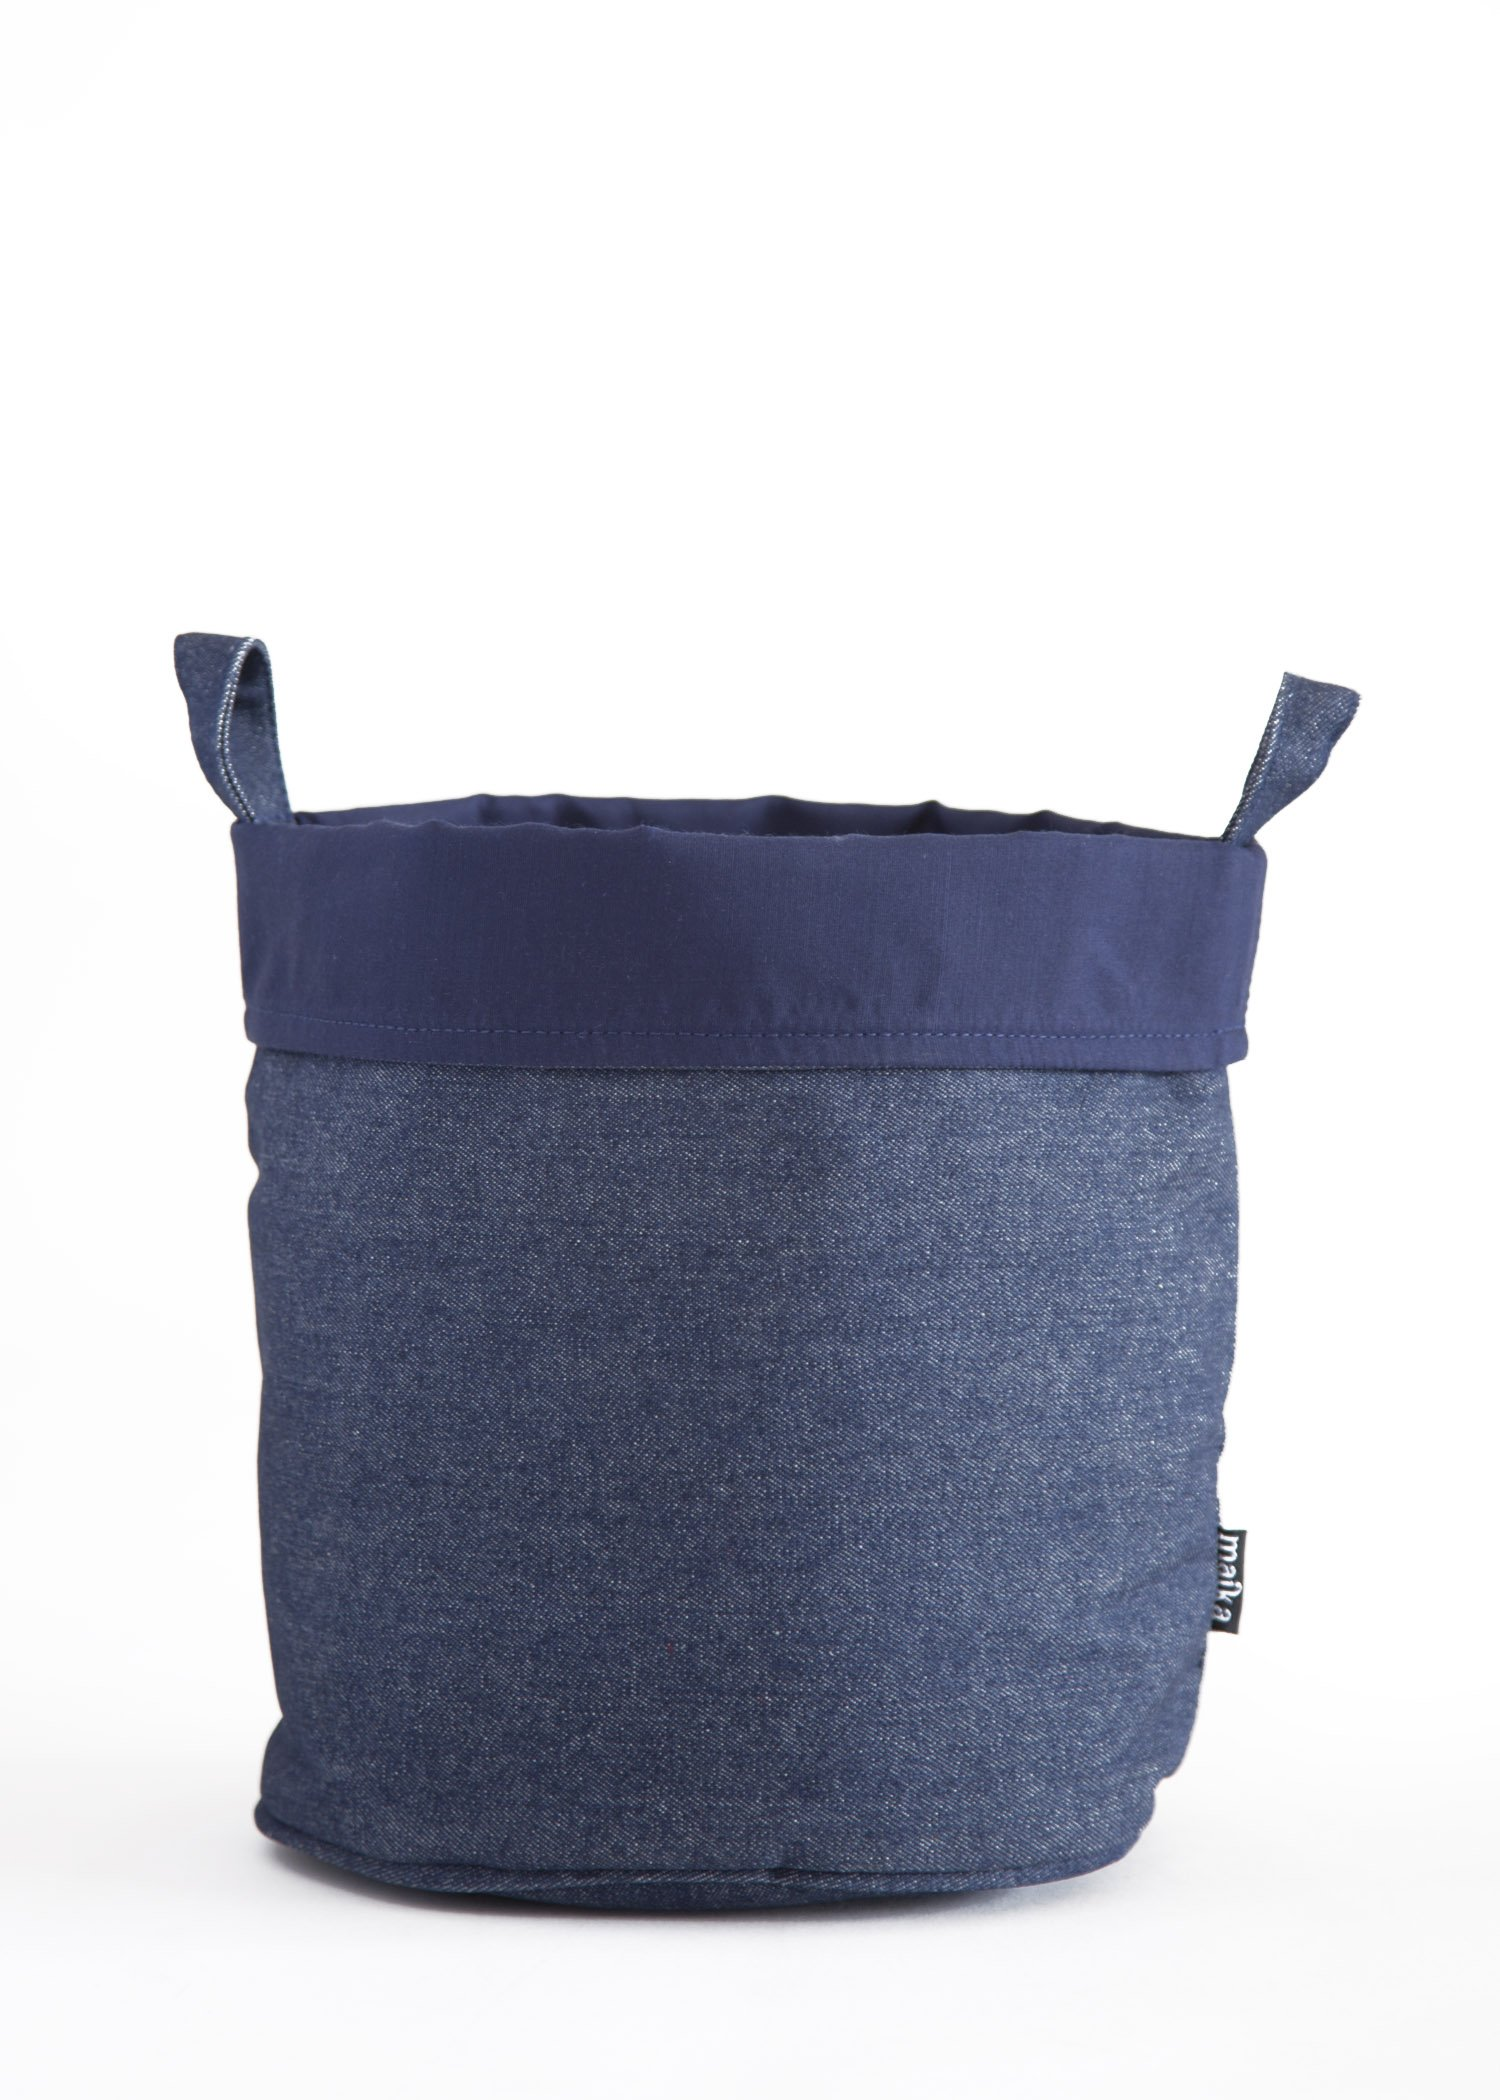 Maika Recycled Canvas Bucket, Indigo Denim (Large)